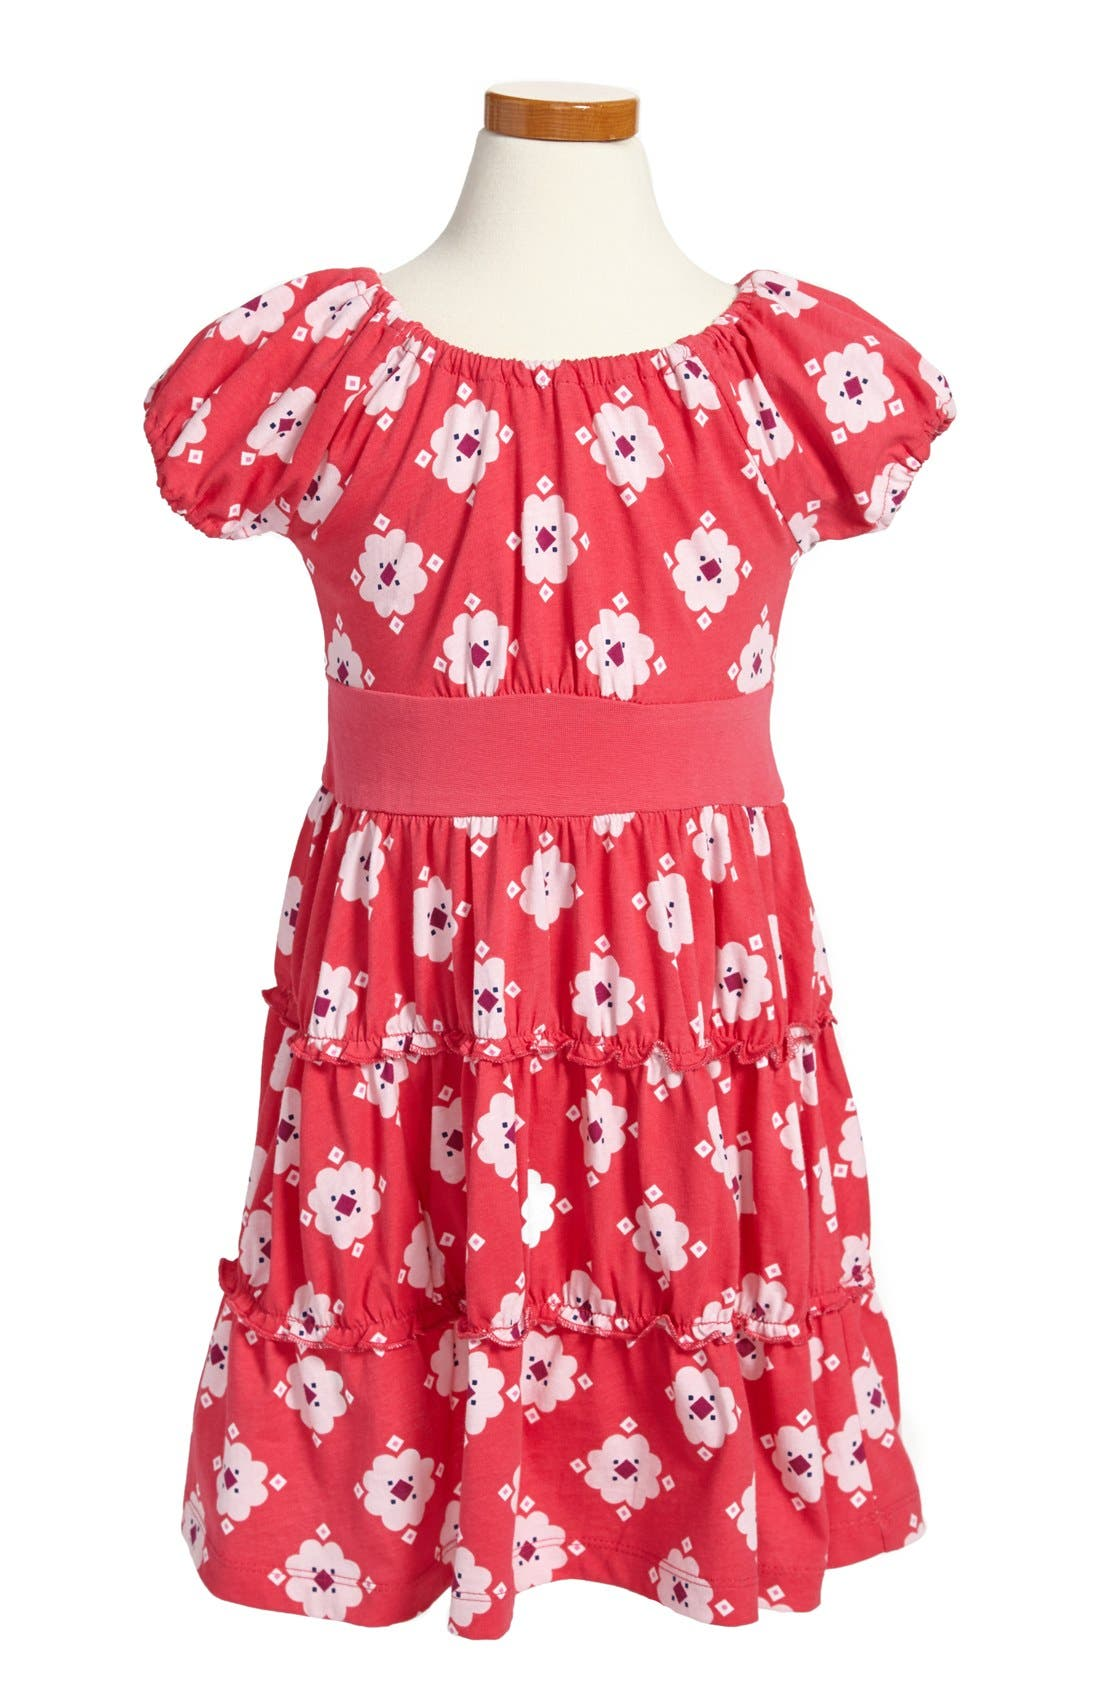 Main Image - Tea Collection 'Berber Floral' Twirl Dress (Baby Girls)